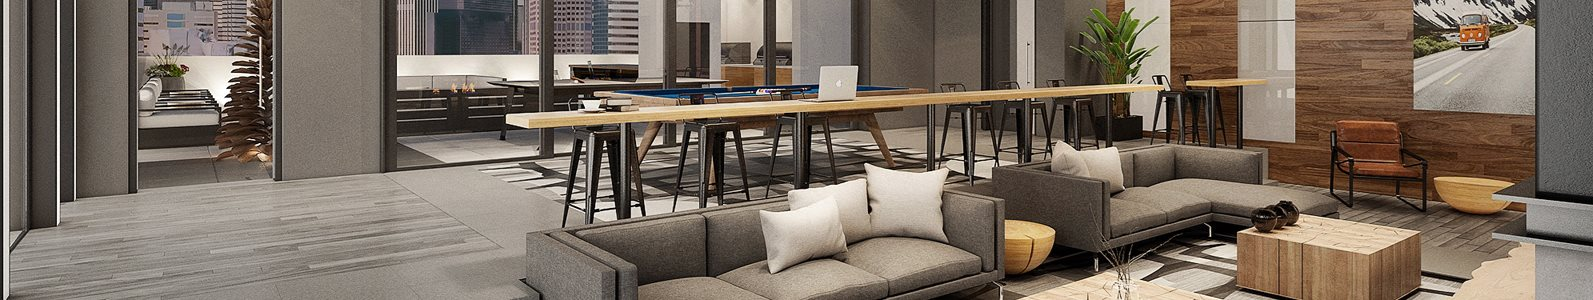 banner image view of luxury community space in apartments